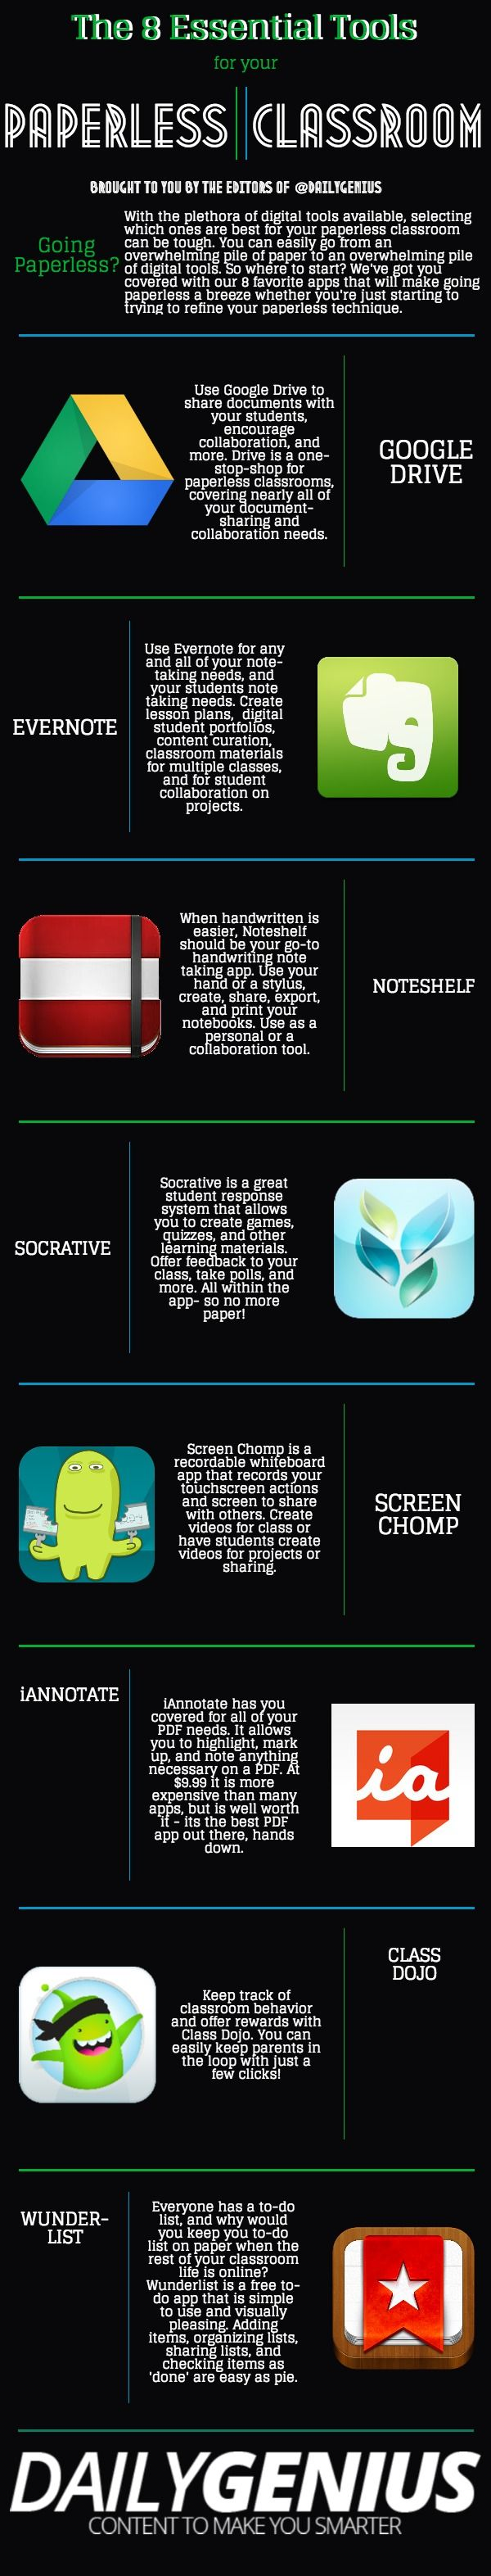 8 Essential Tools for a Paperless Classroom: Google Drive, Evernote, Noteshelf, ... 2